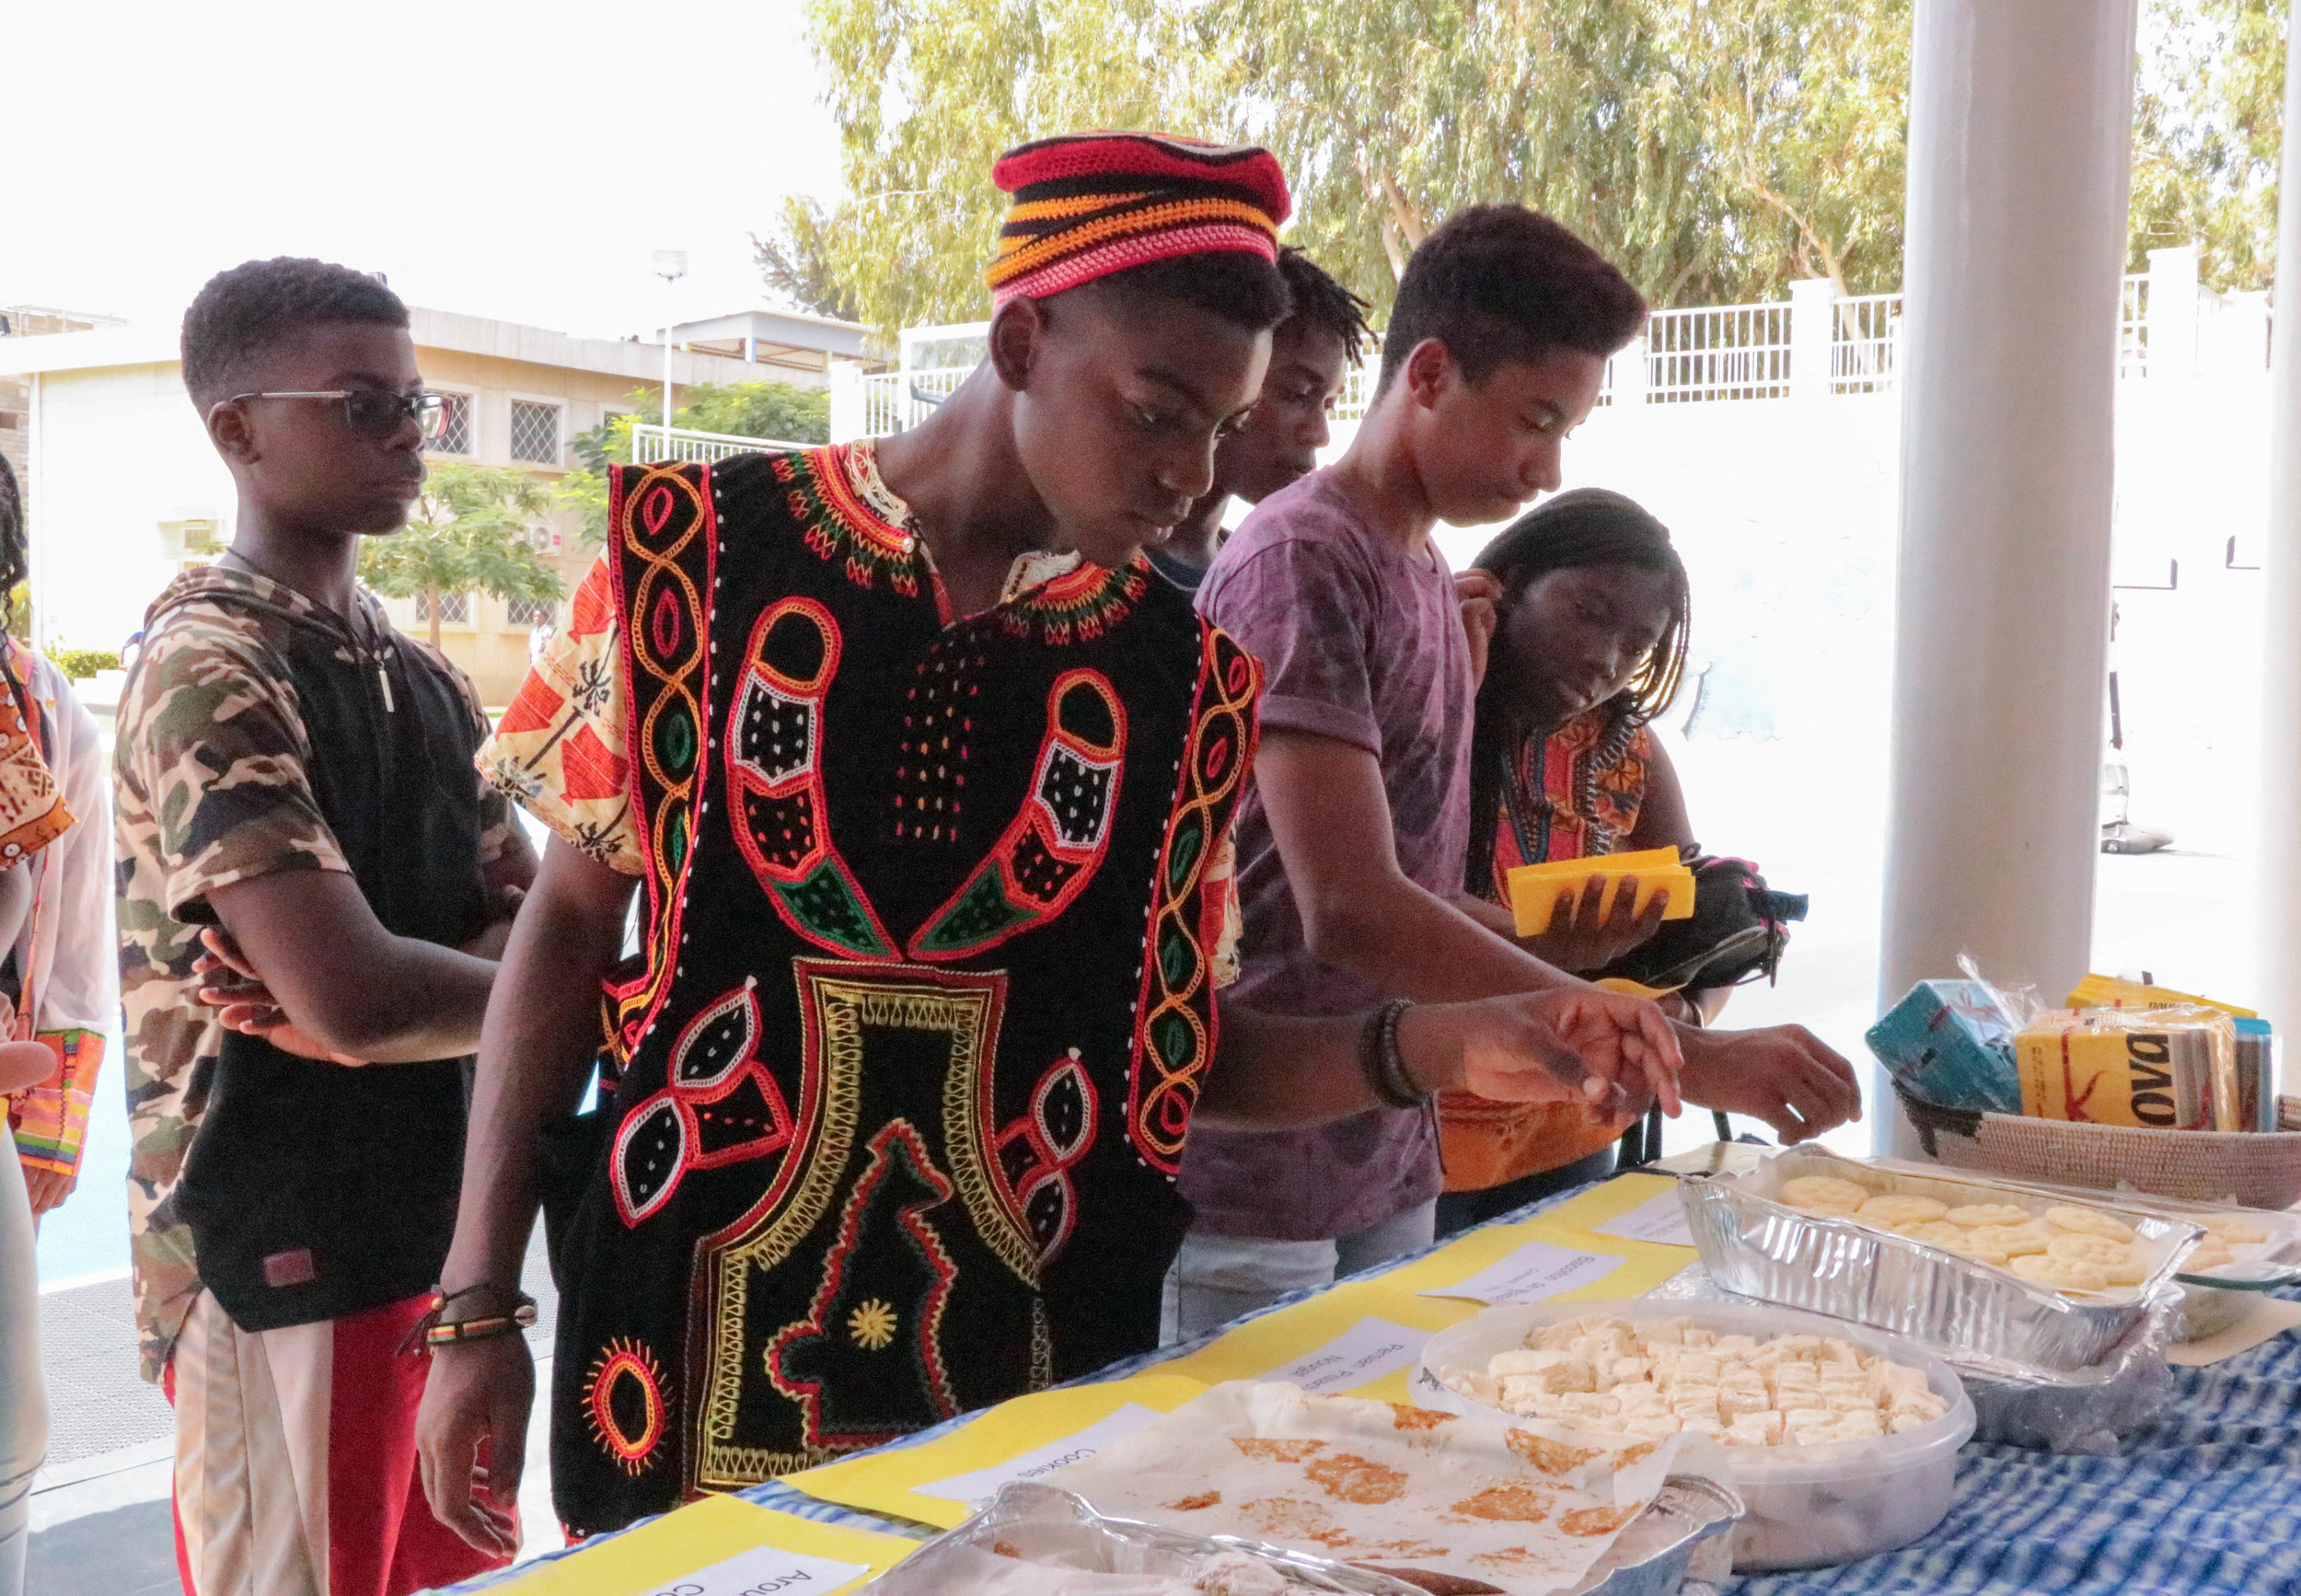 Dakar Academy's international student body celebrated cultural diversity by eating cookies from around the world.